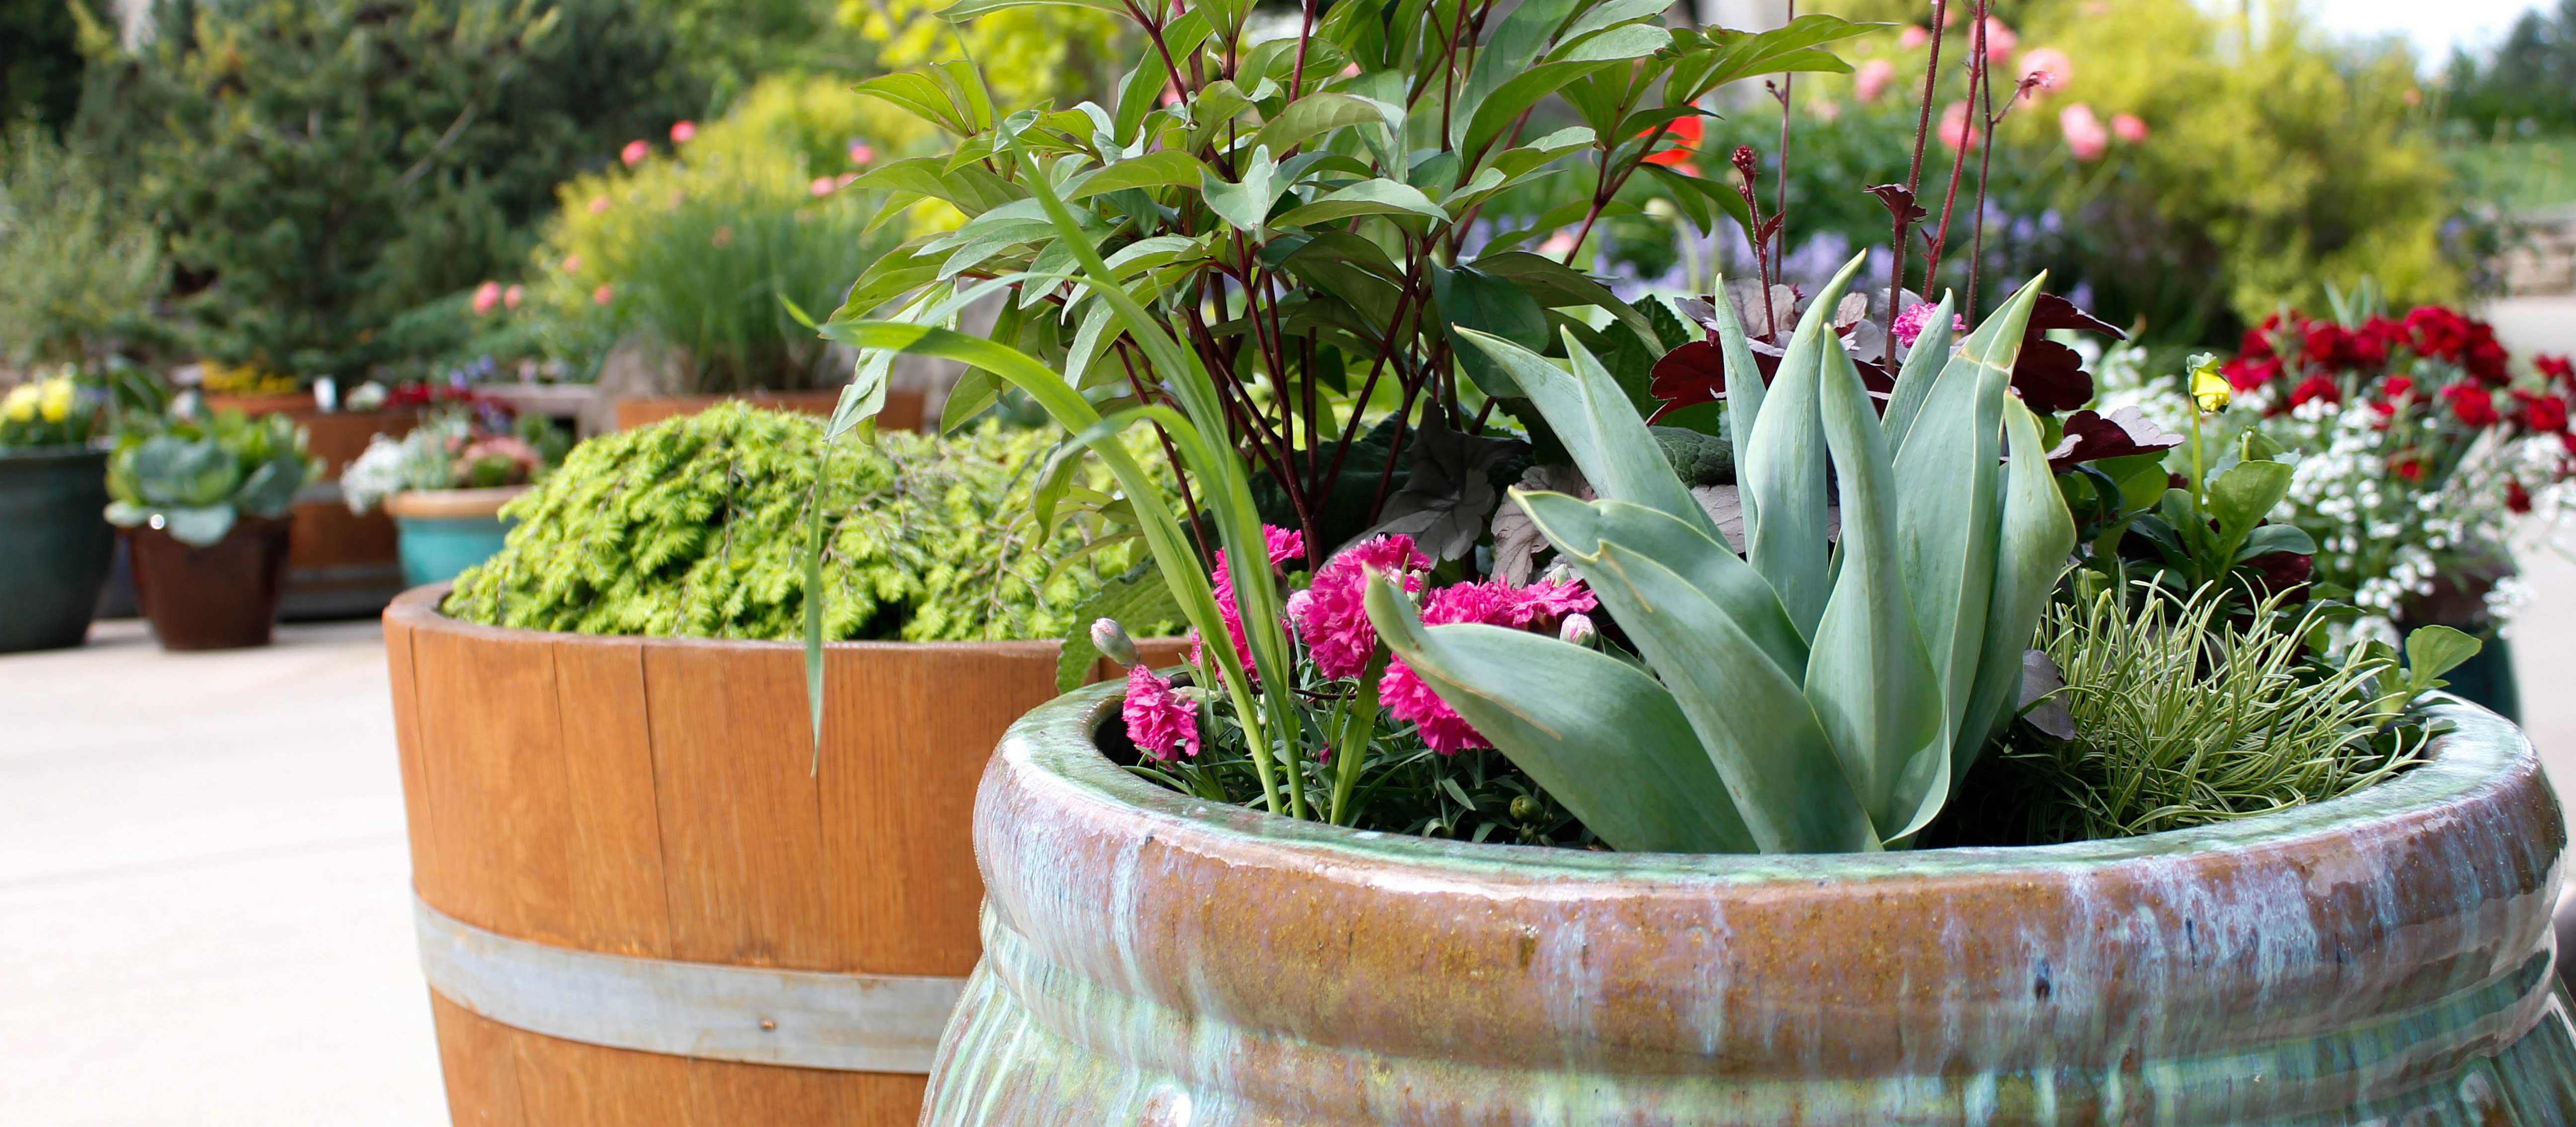 Red, pink, and purple potted flowers show what container garden workshop results can look like.